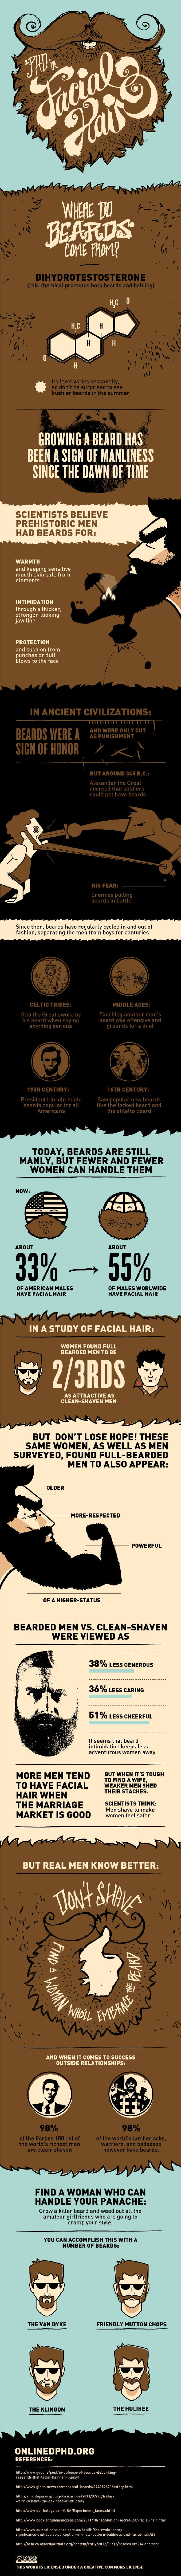 Beards-Facial-Hair-Stats-Infographic